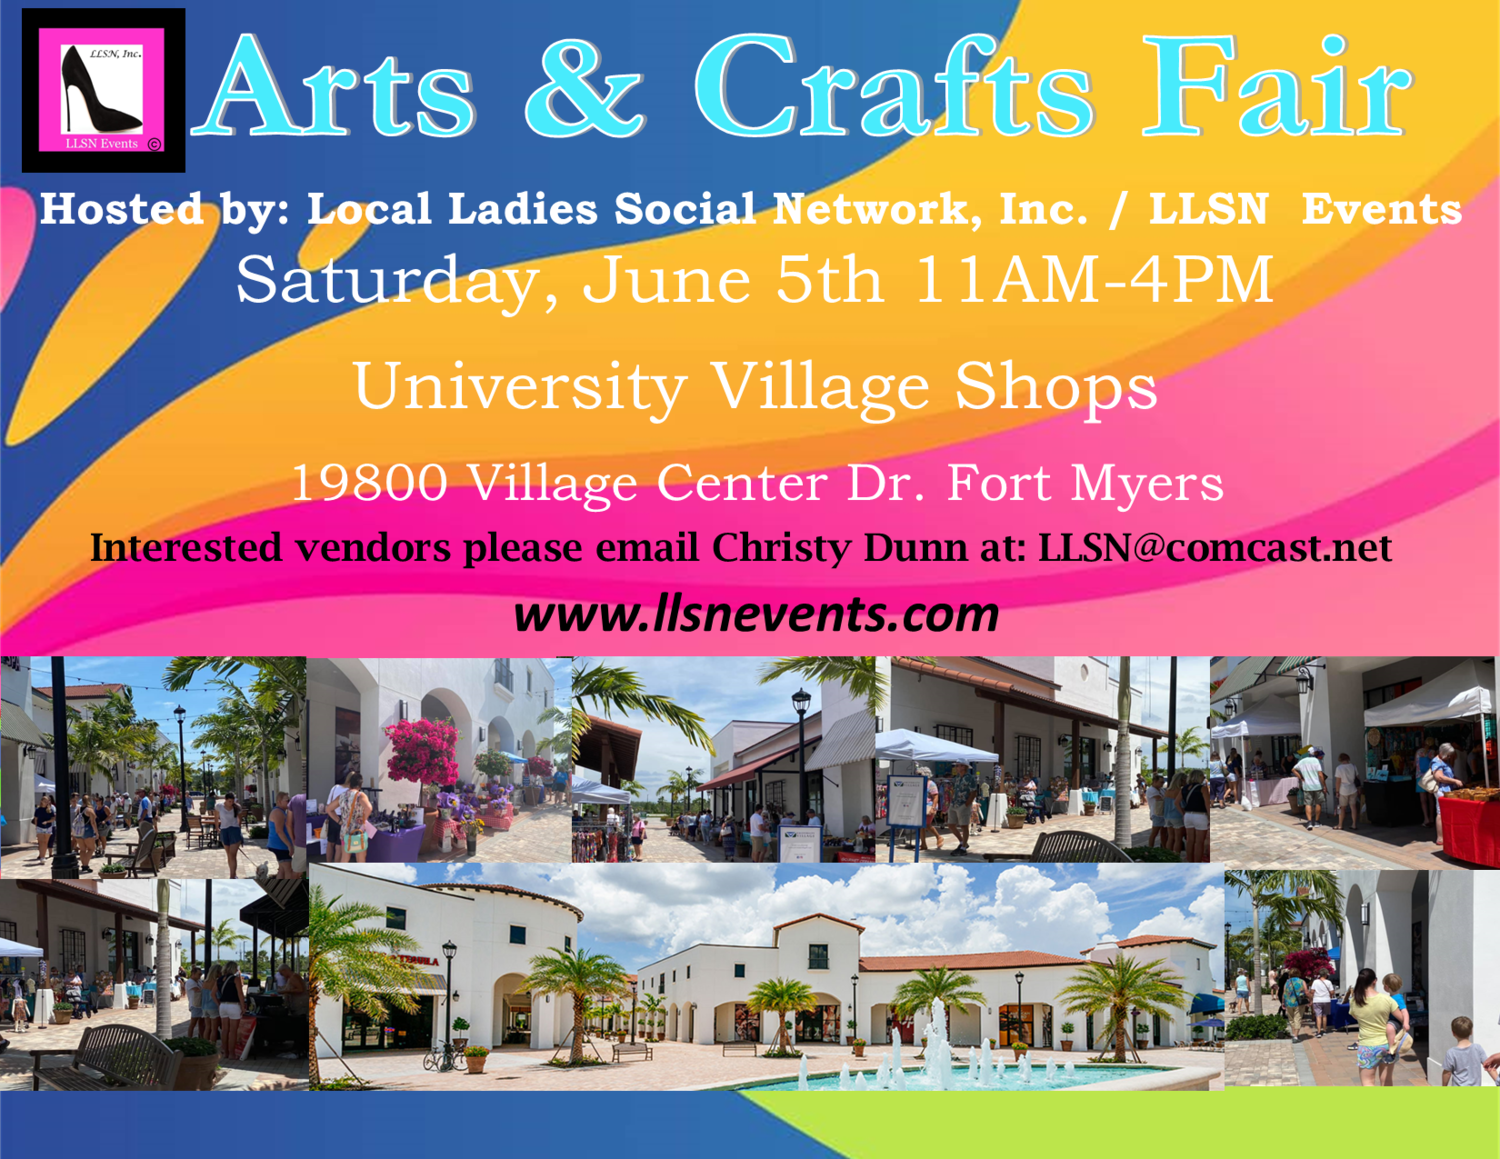 Arts & Crafts Fair- Fort Myers, Saturday June 5th  11AM-4PM